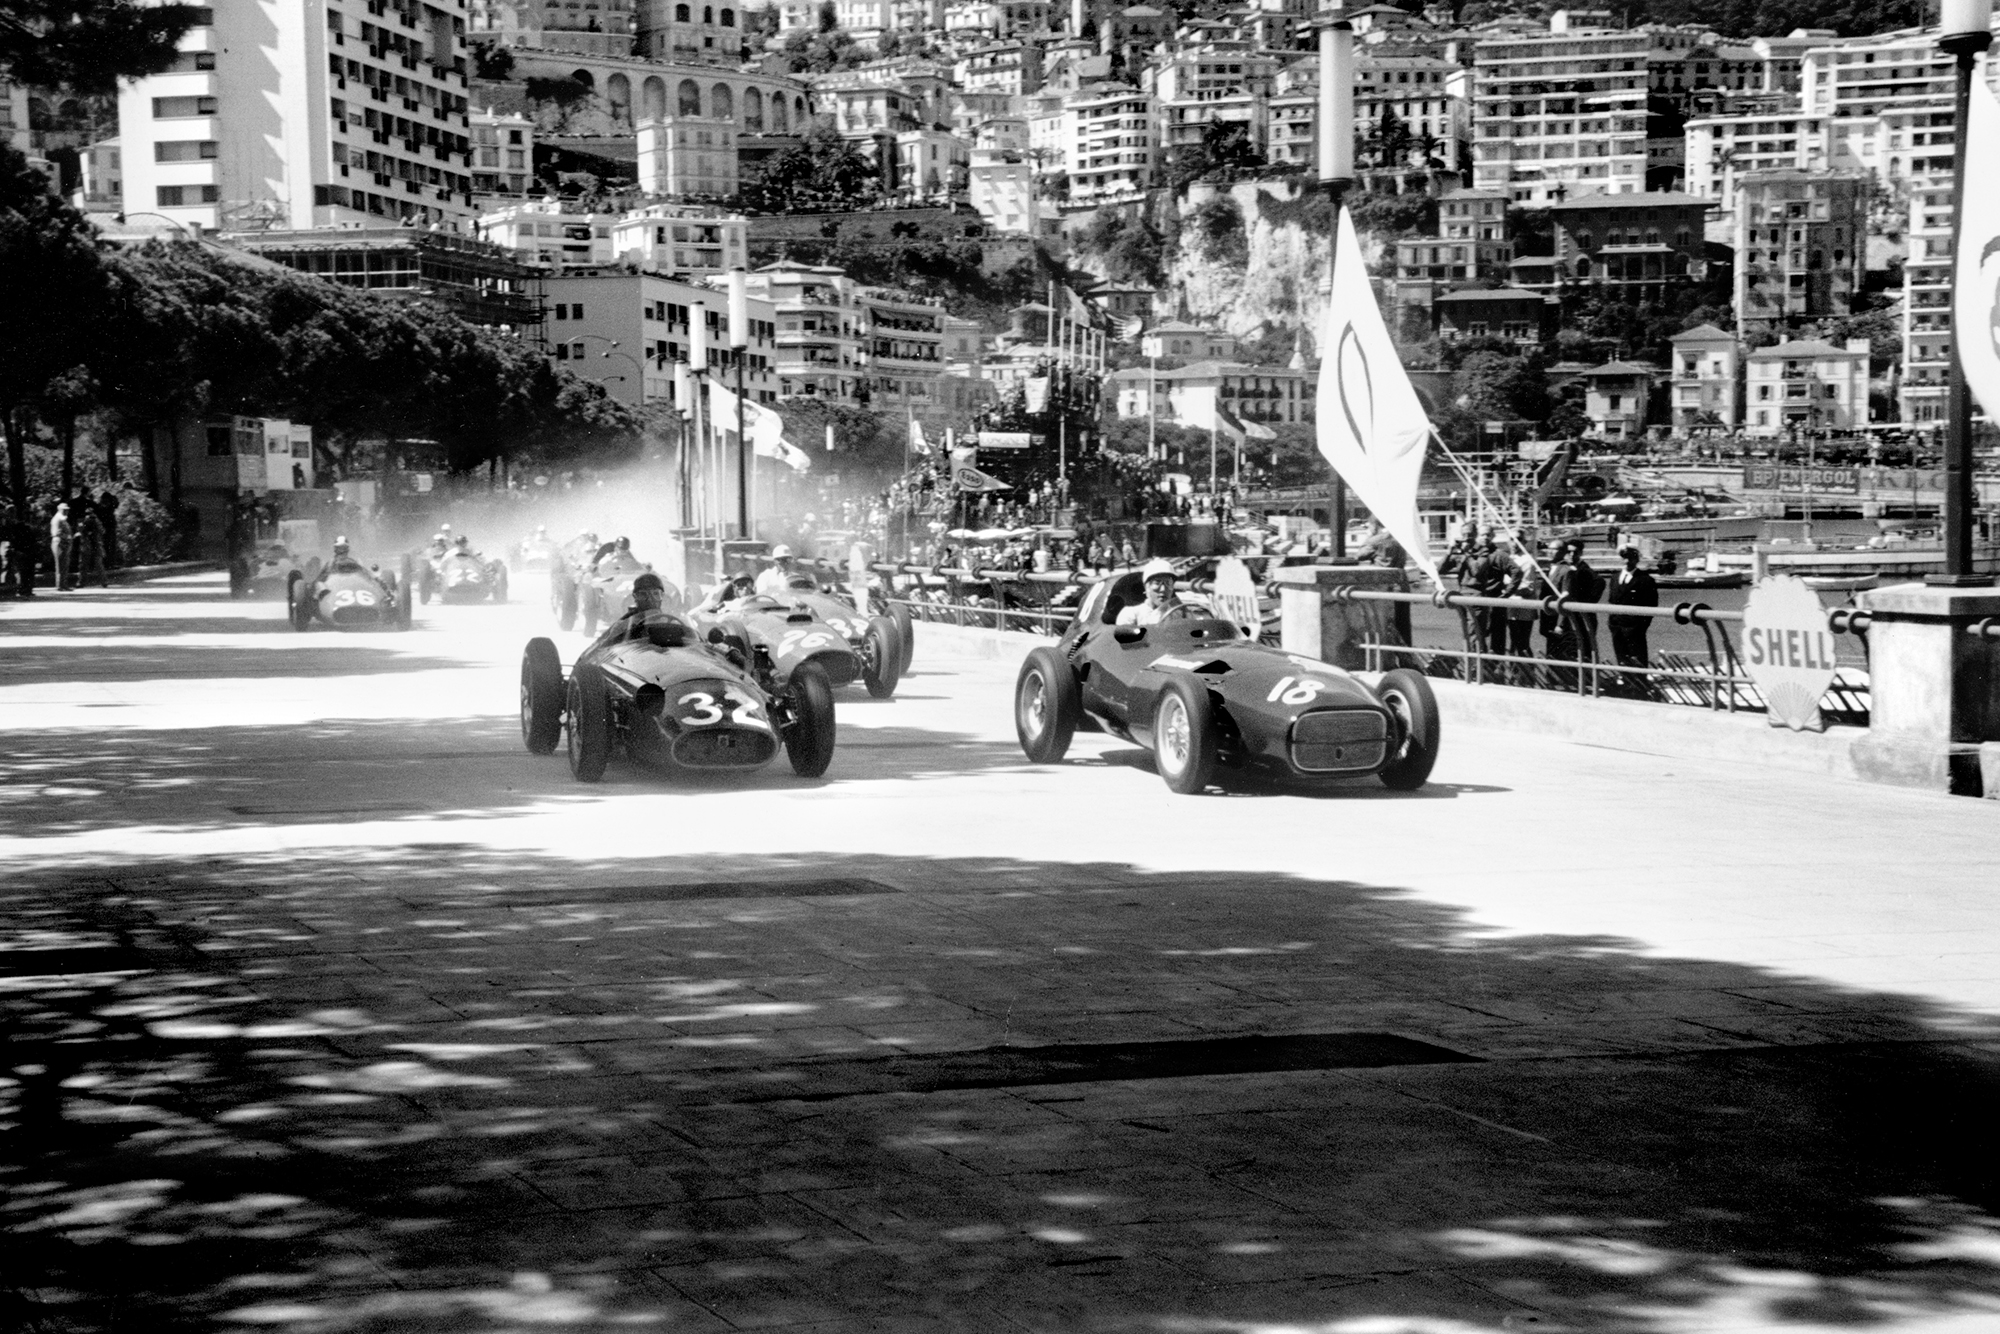 Juan Manuel Fangio (Maserati 250F), 1st position and Stirling Moss (Vanwall VW3), retired, lead at the start of the 1957 Monaco Grand Prix.